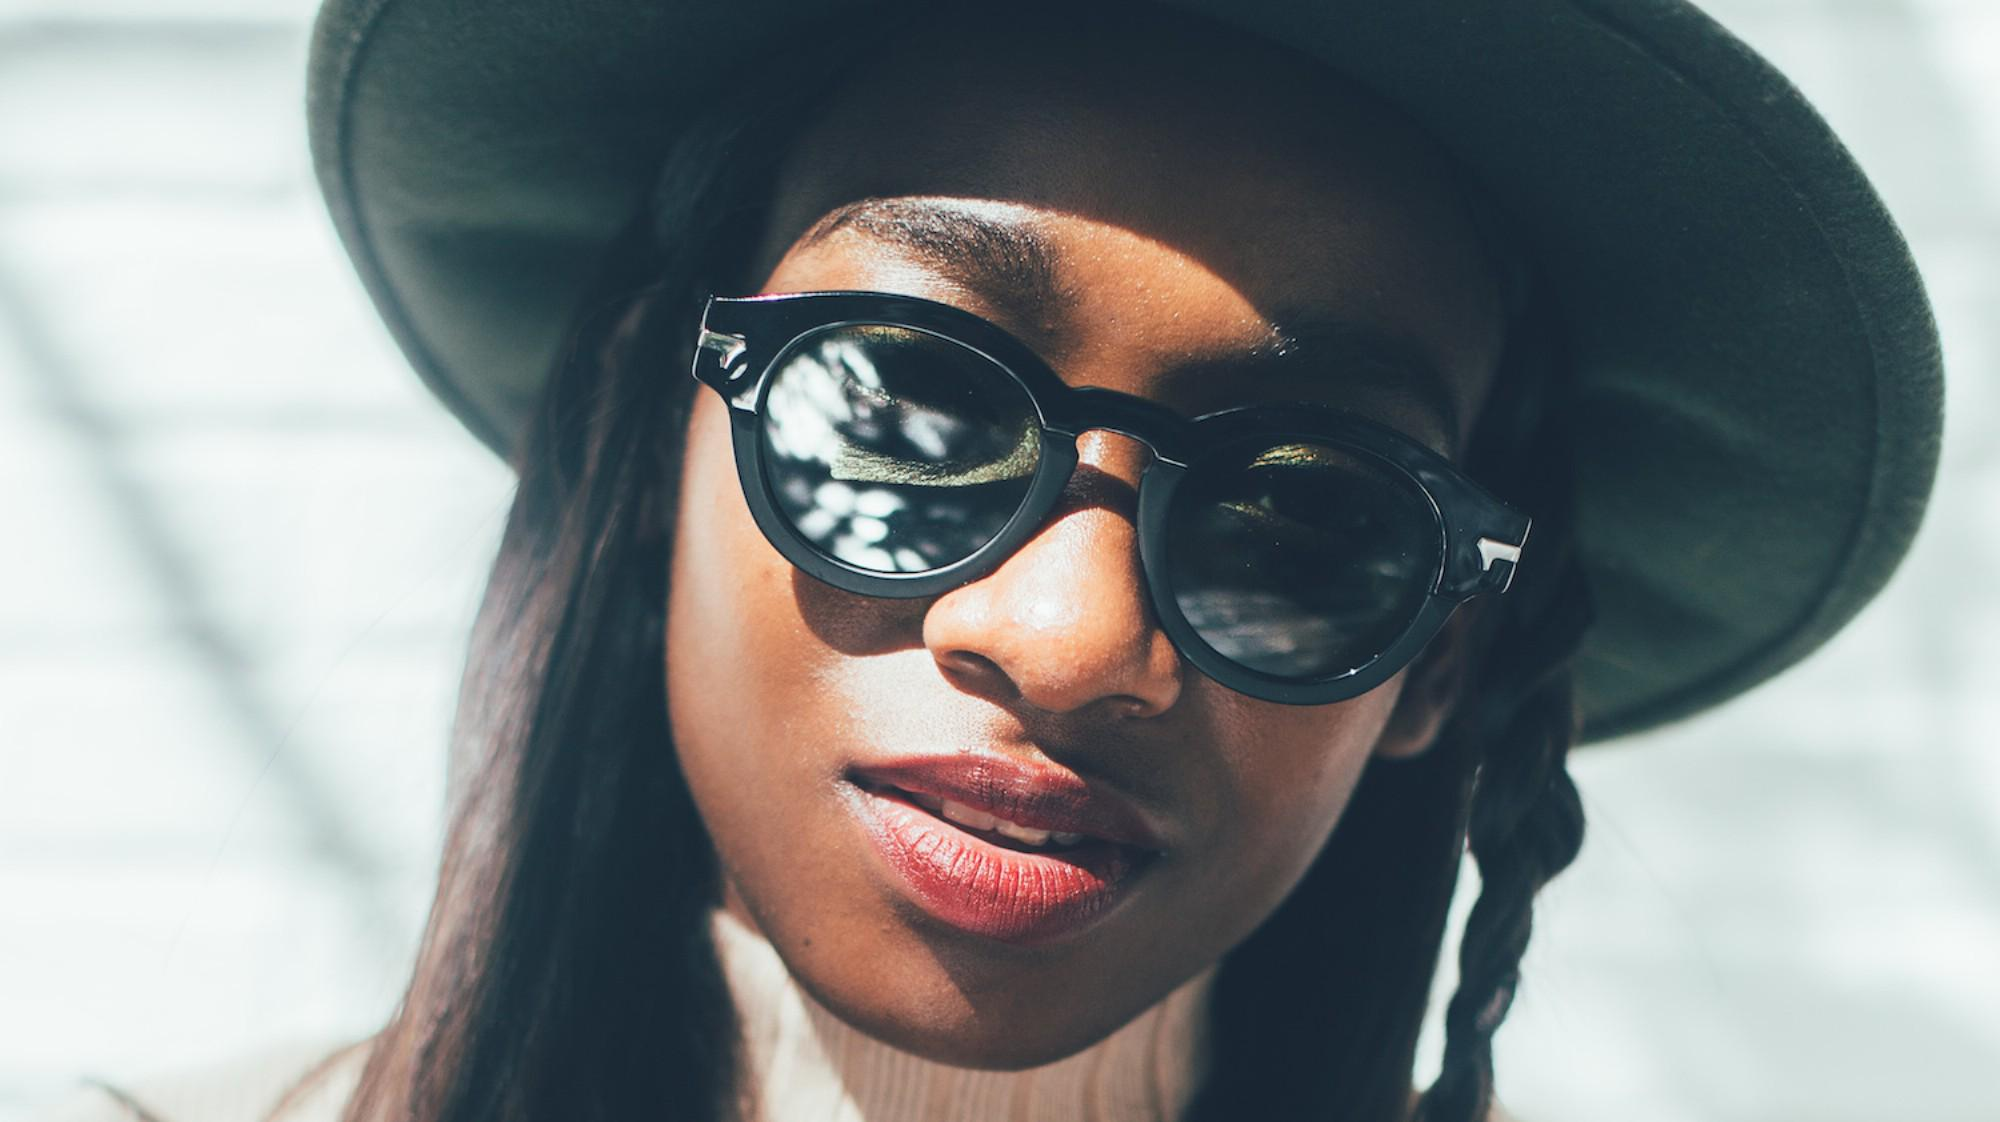 .@littlesimz drops yet another awesome track: http://t.co/FZ1AAdsA3r http://t.co/P6AFijQcLt